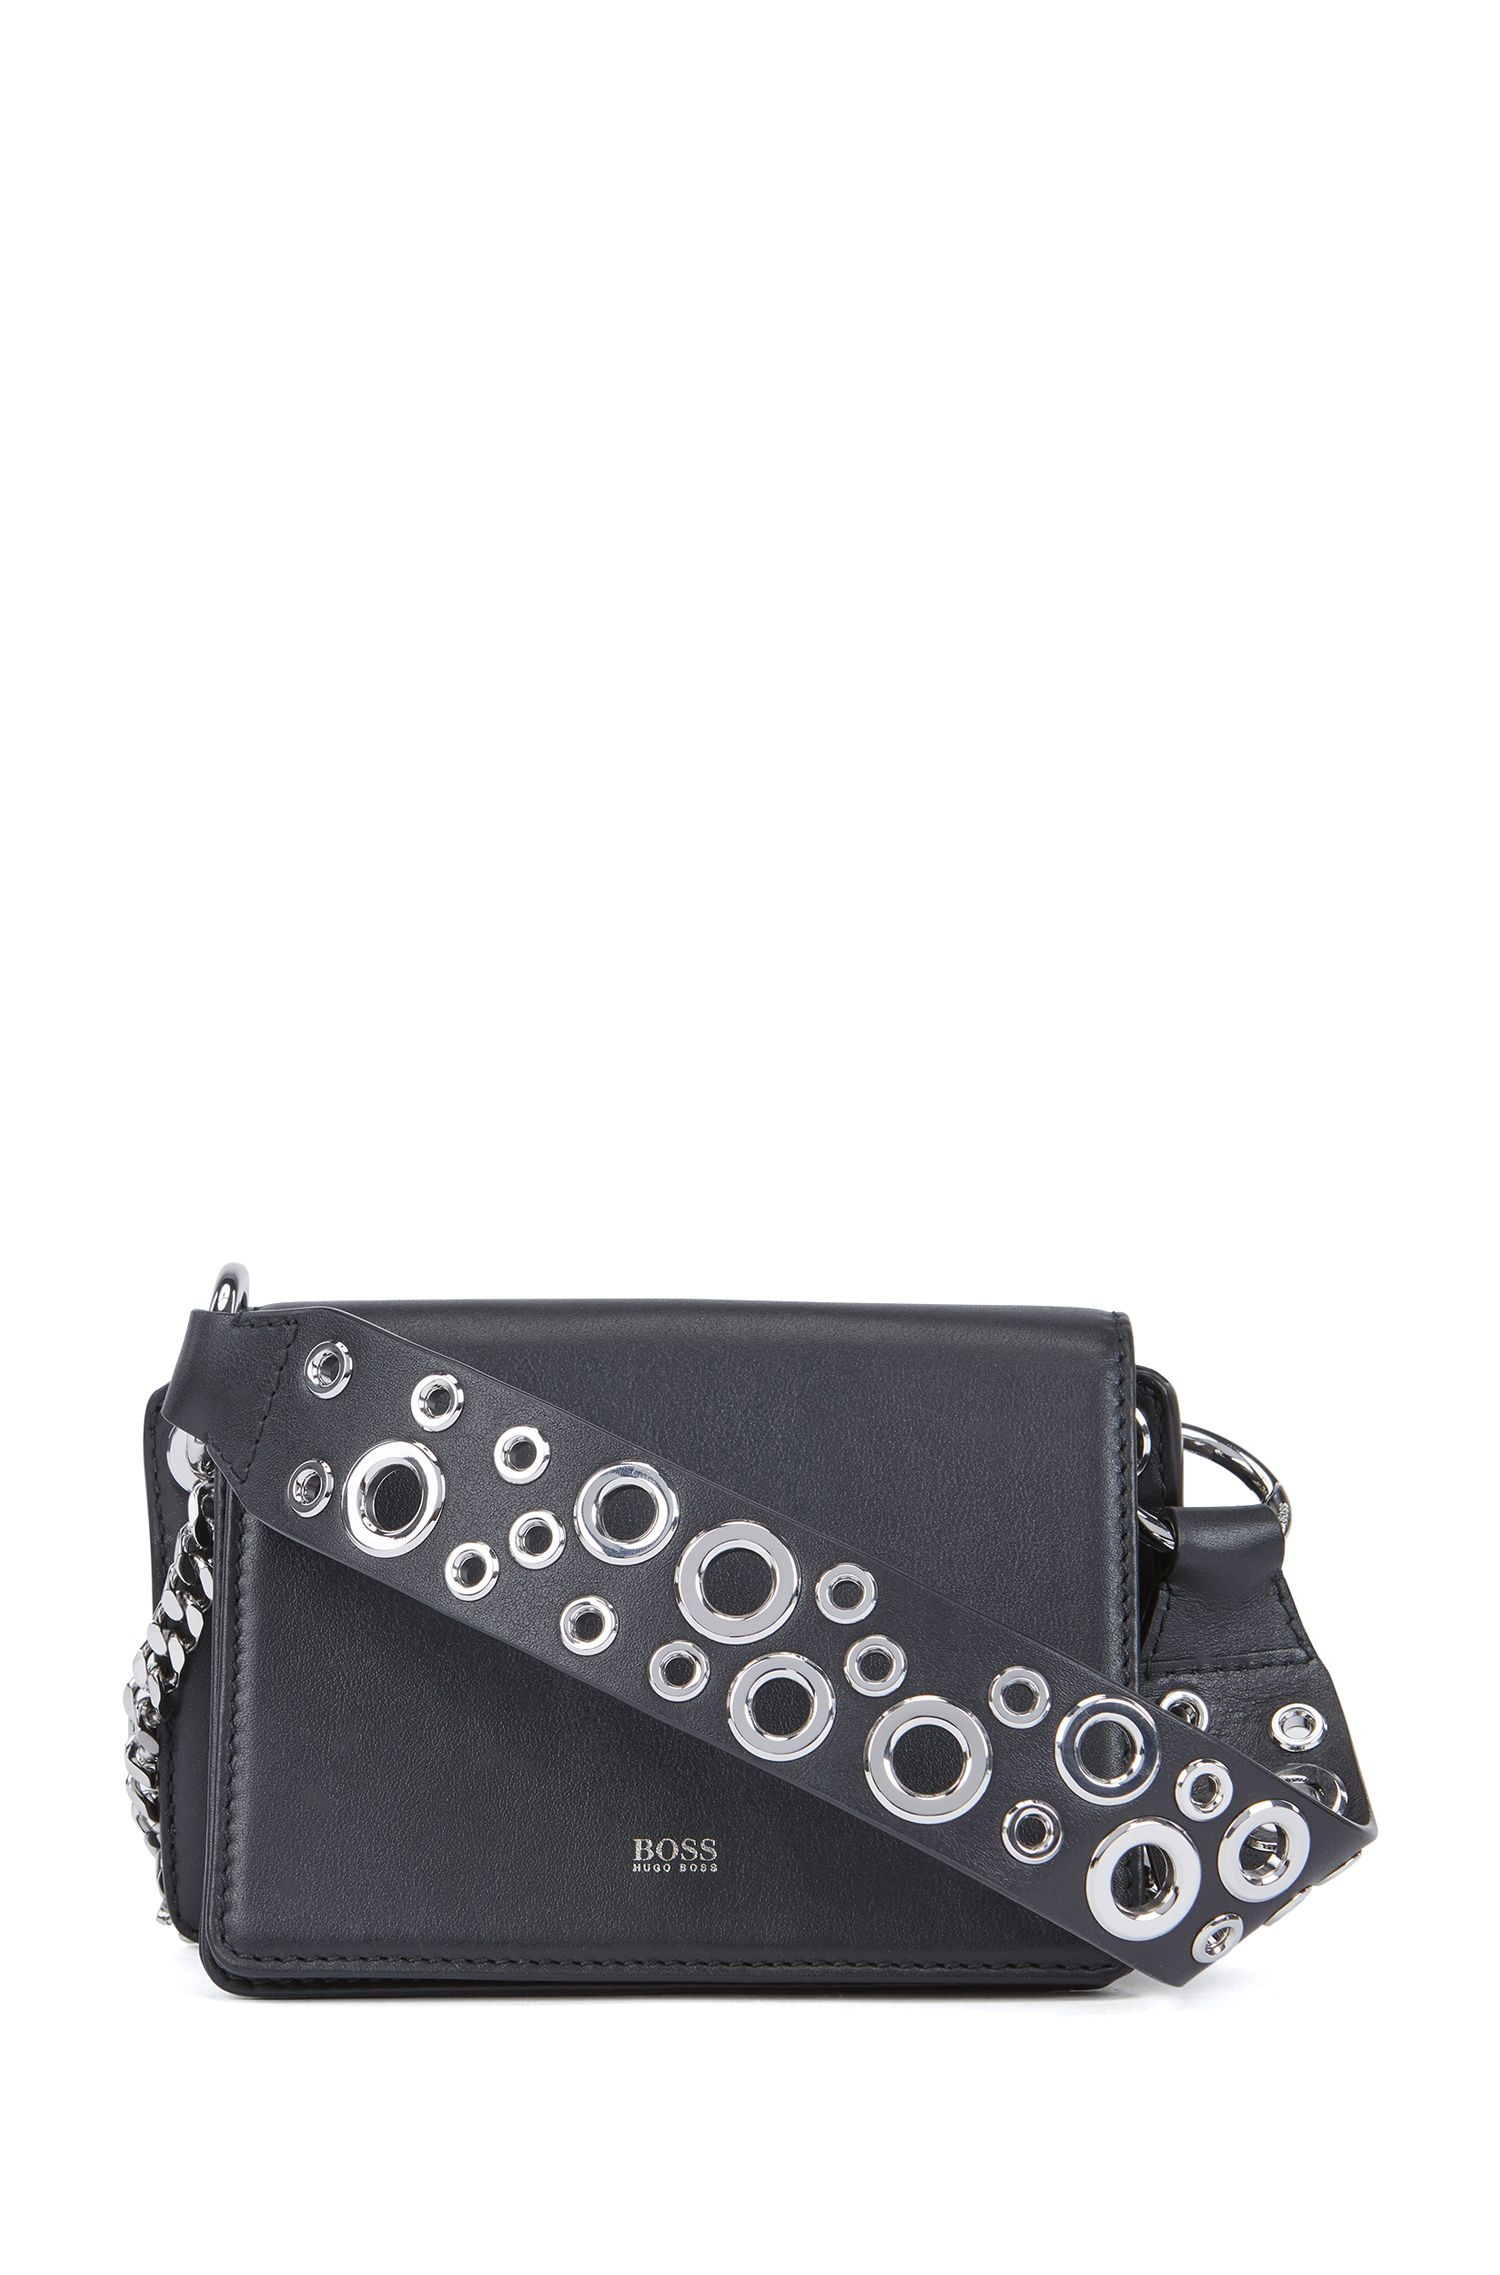 Crossbody bag in Italian leather with eyelet-detailed handle, Black